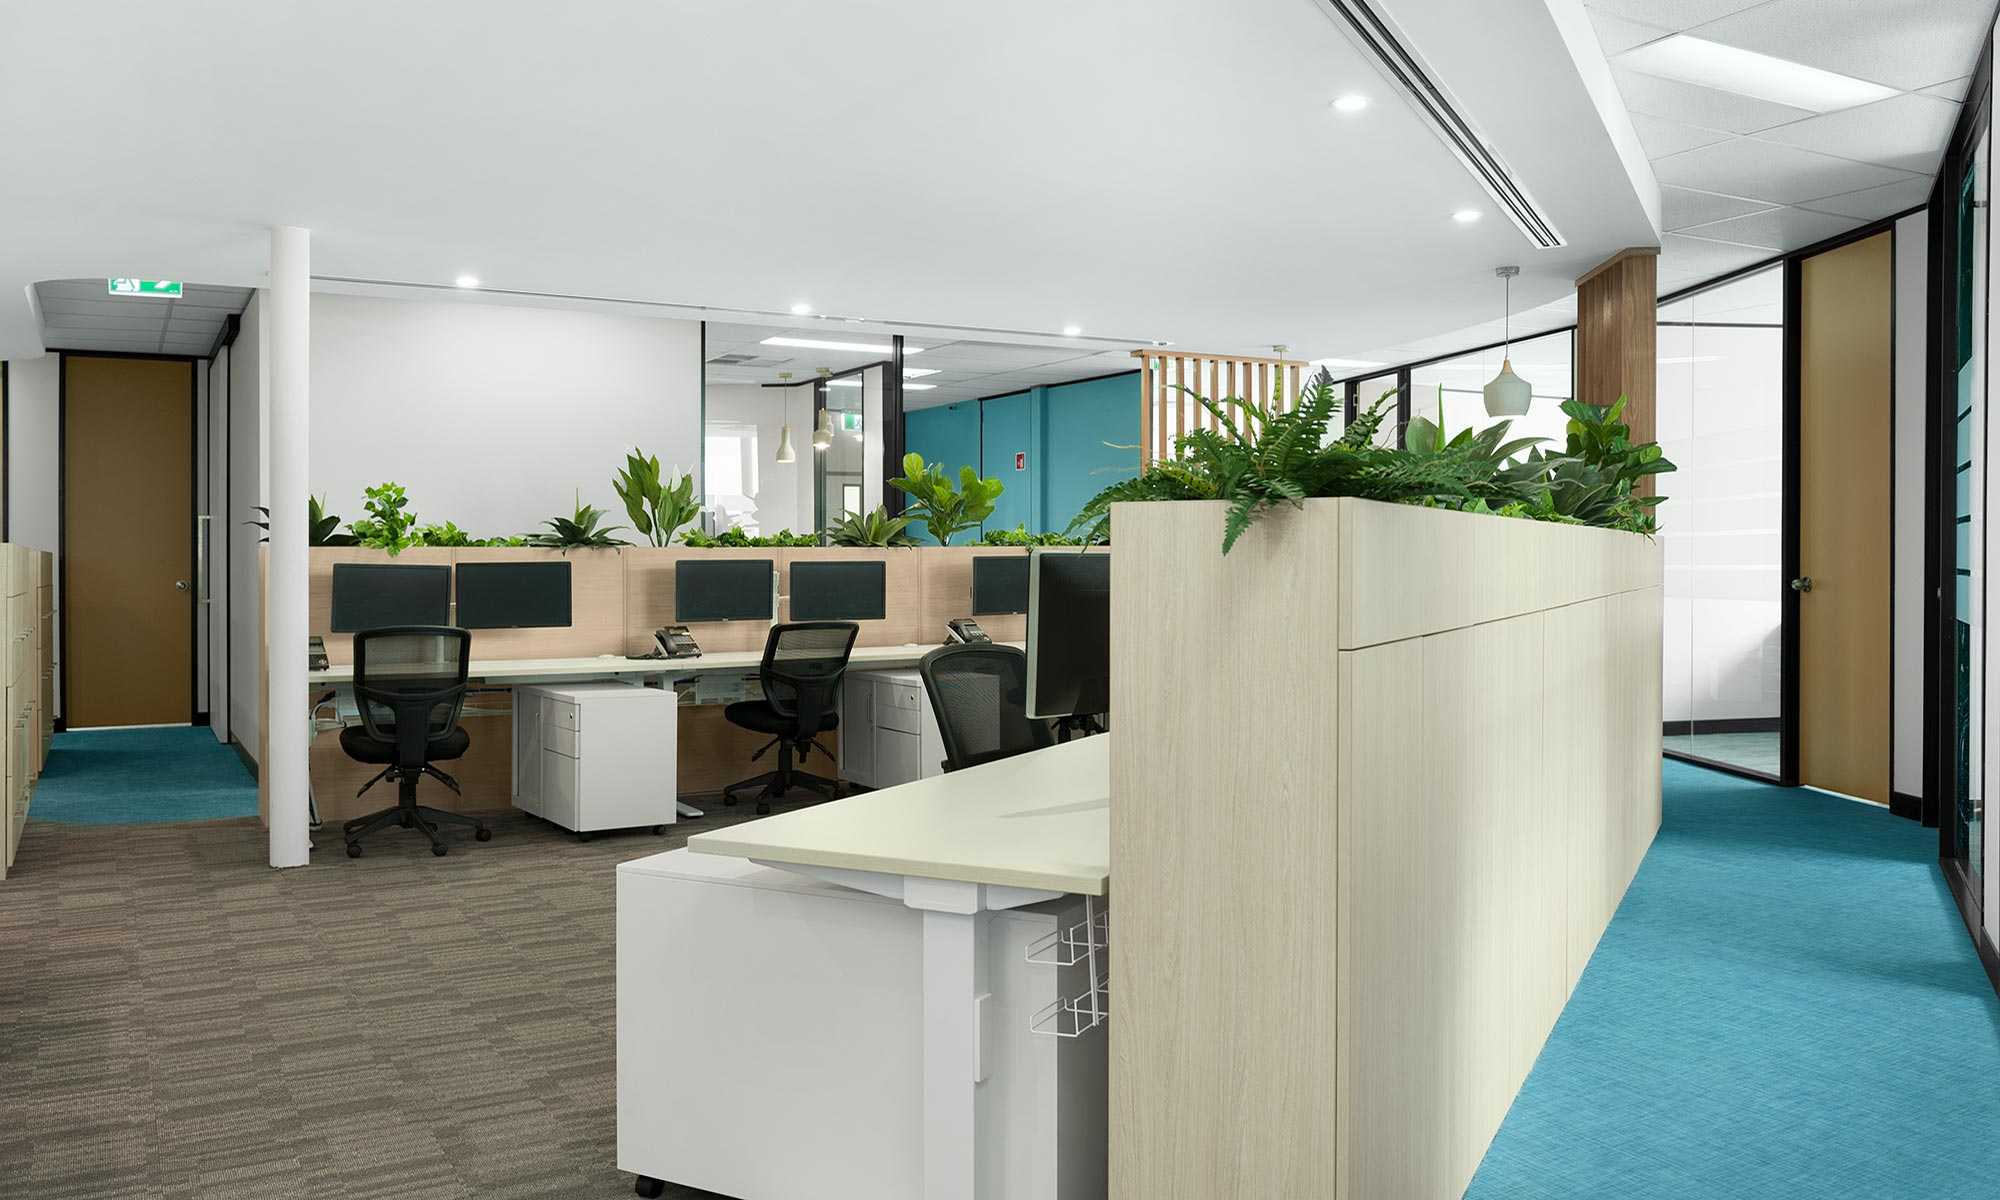 klm accountants office design fitout newcastle 02